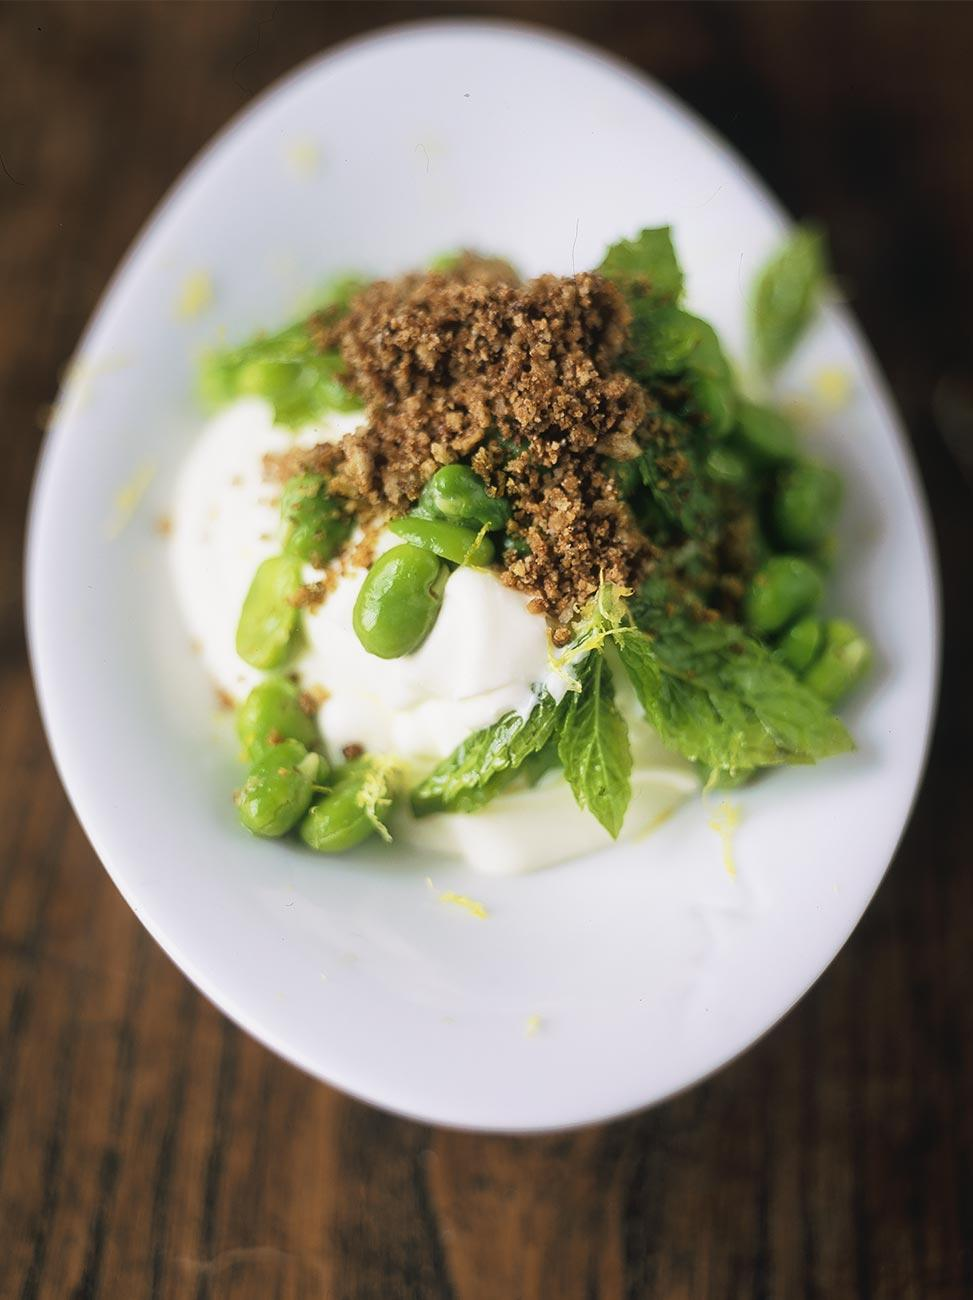 Moroccan style broad bean salad with yoghurt and crunchy bits